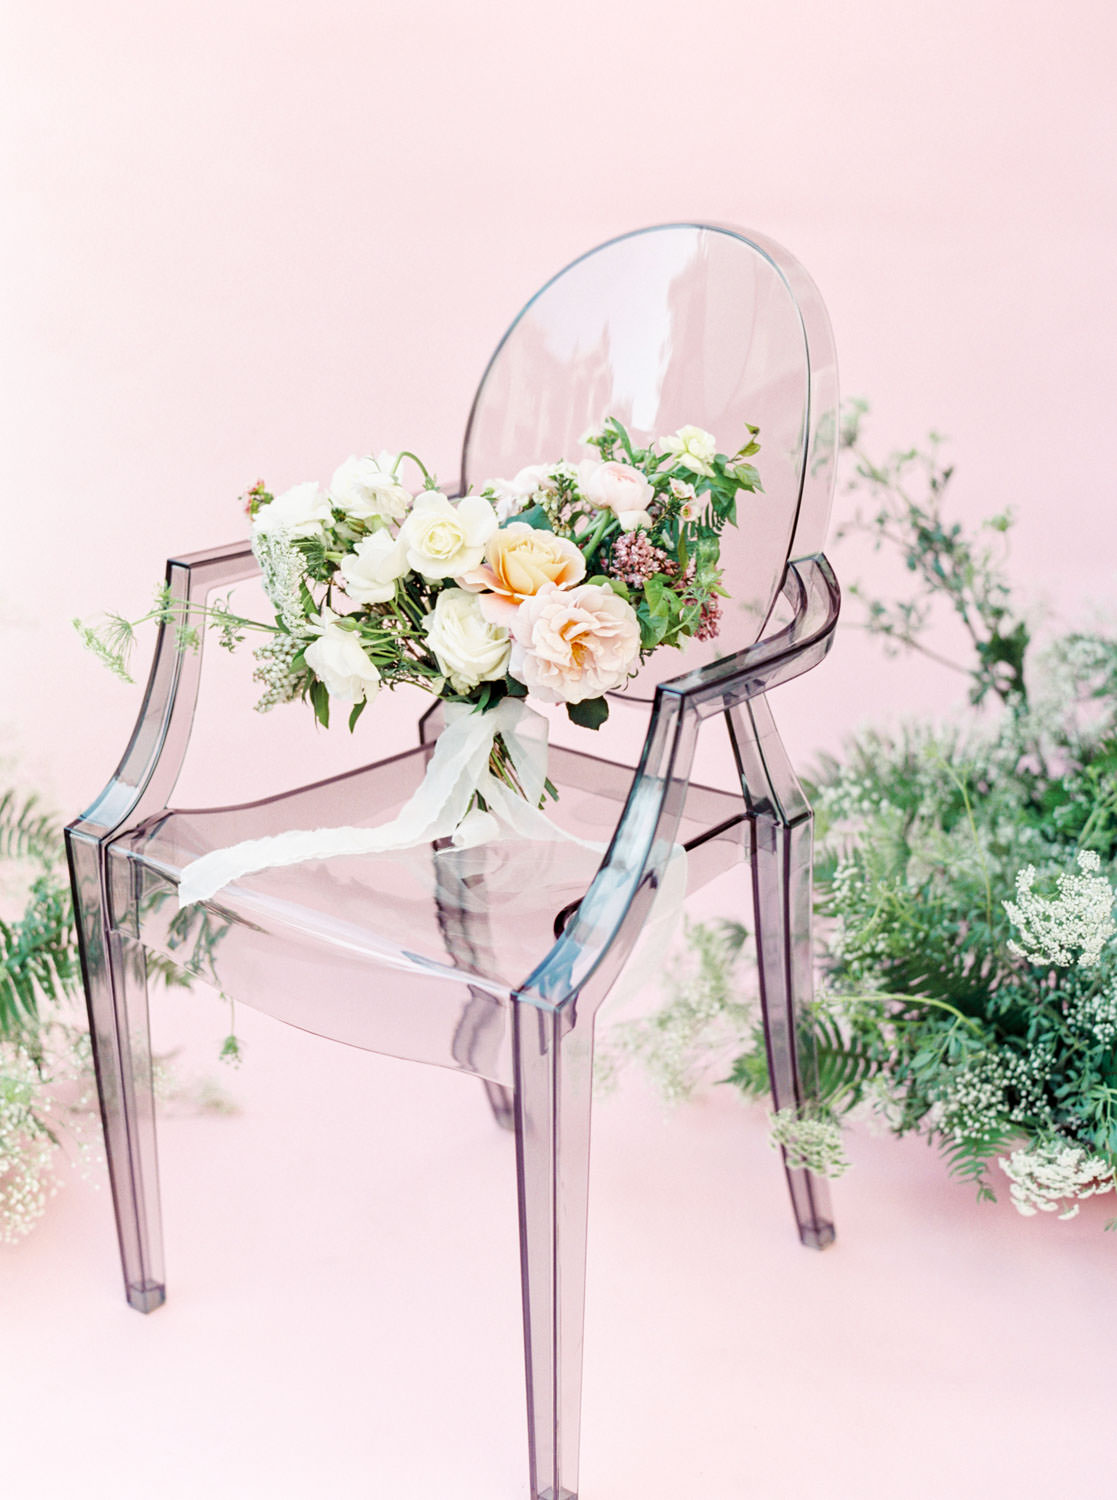 Bridal bouquet in dark ghost chair with blush peach white and green and sheer chiffon ribbons, Pink backdrop wedding editorial on medium format Contax 645 Fuji 400h film by Cavin Elizabeth Photography